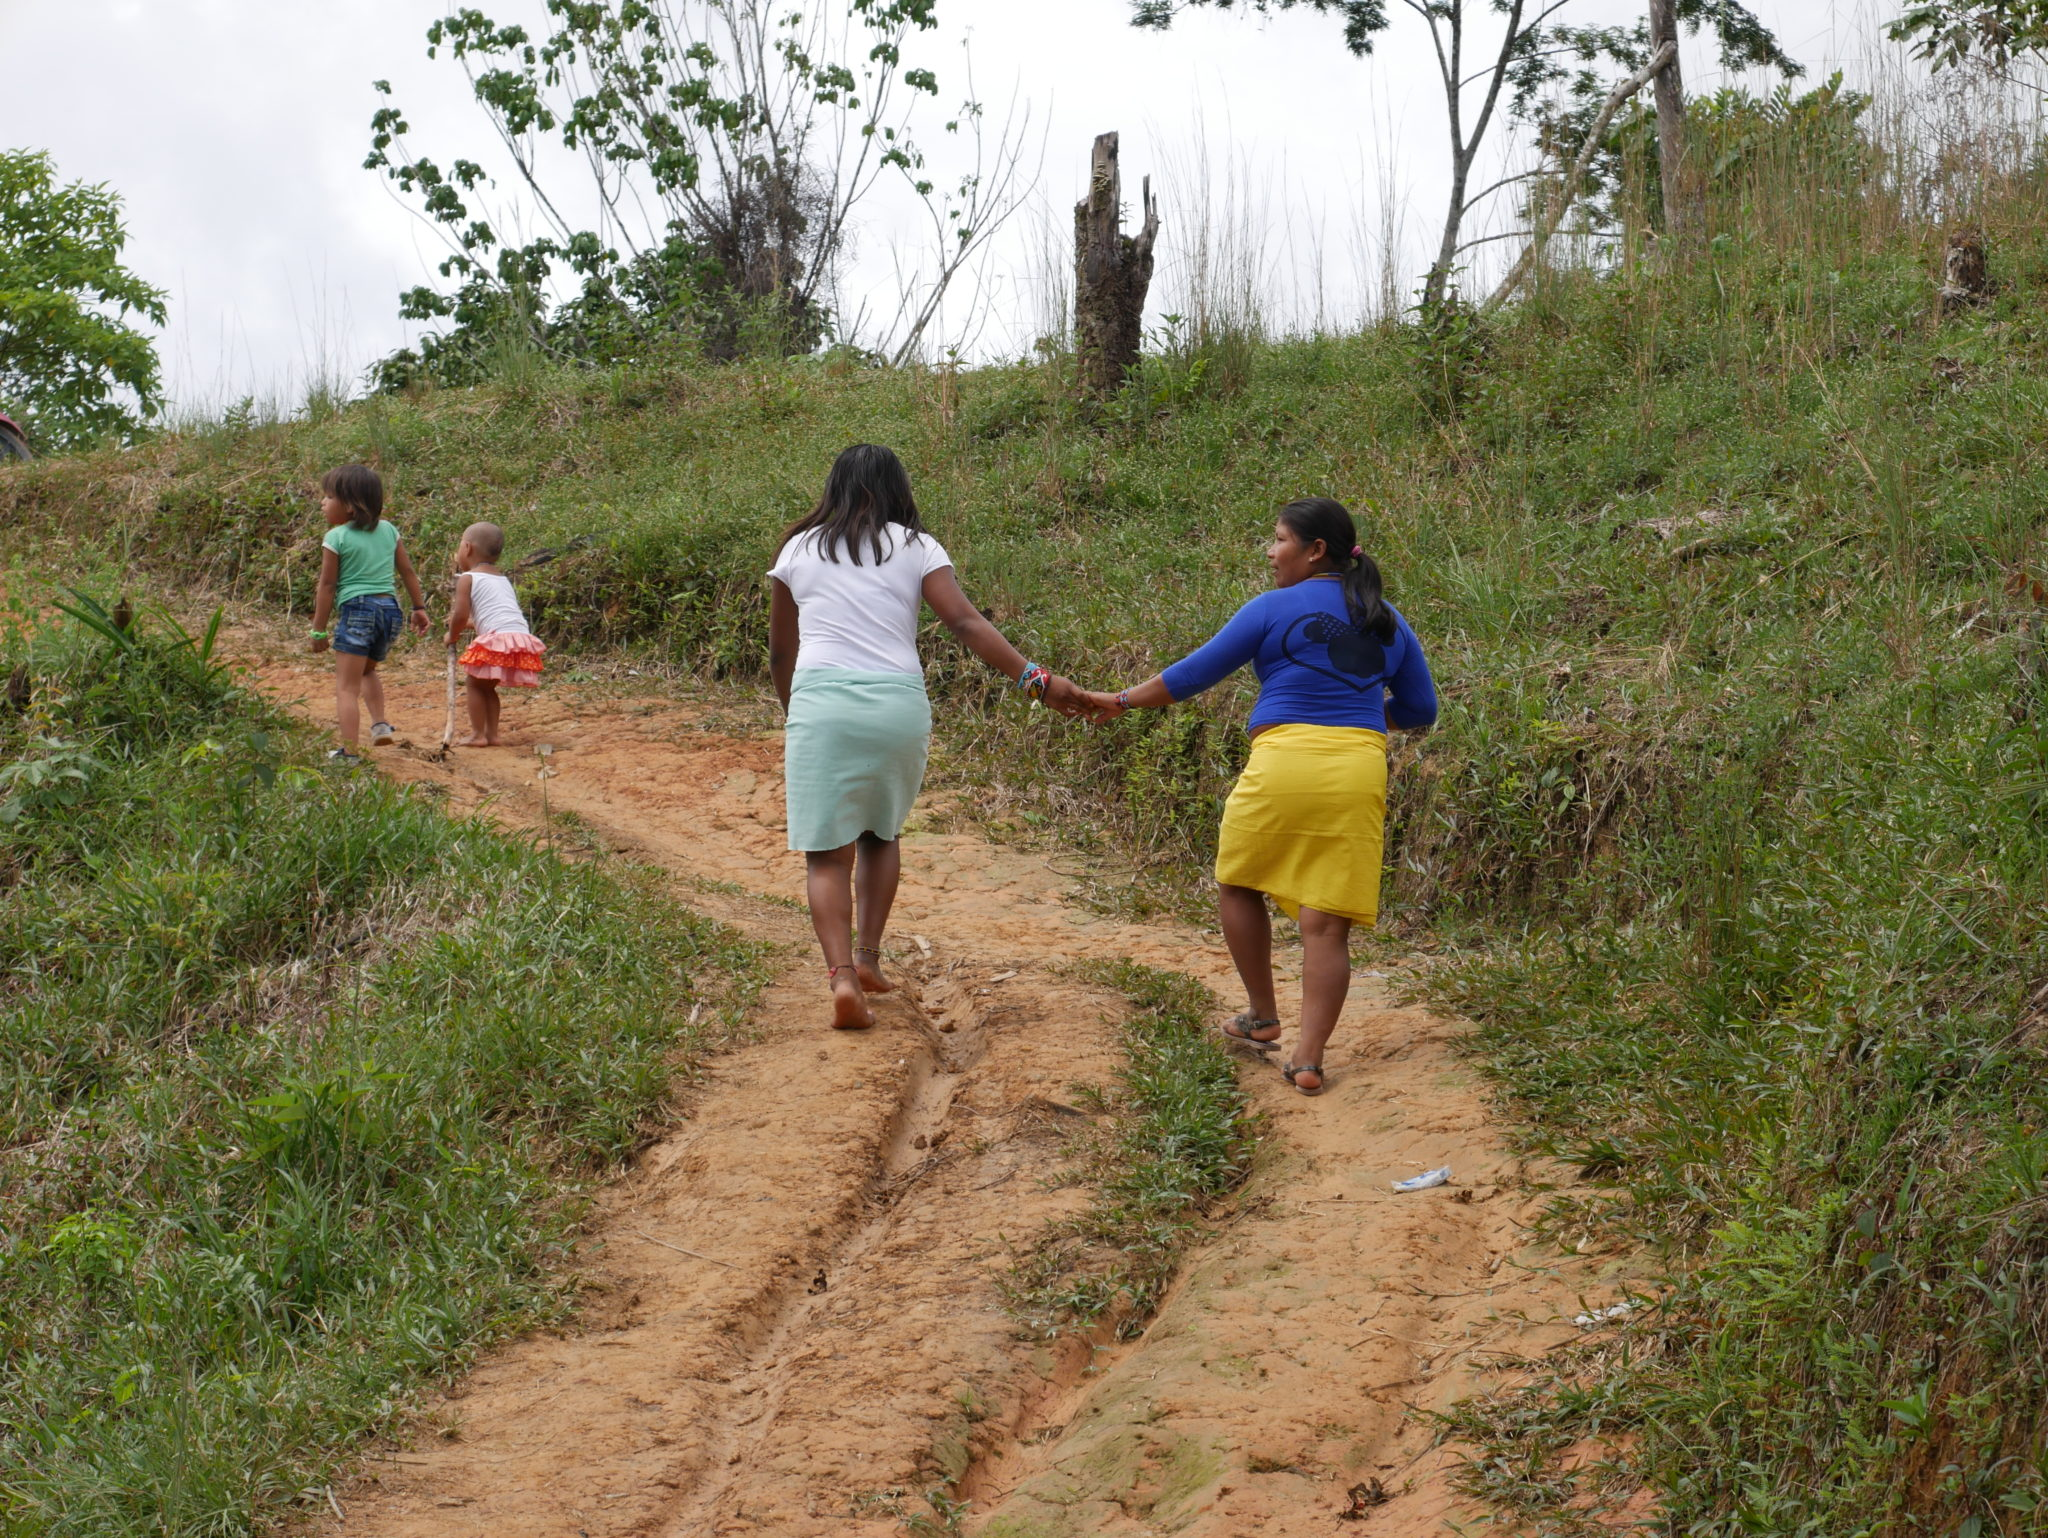 Colombia: Government fails to keep civilians safe as new threats go unchallenged